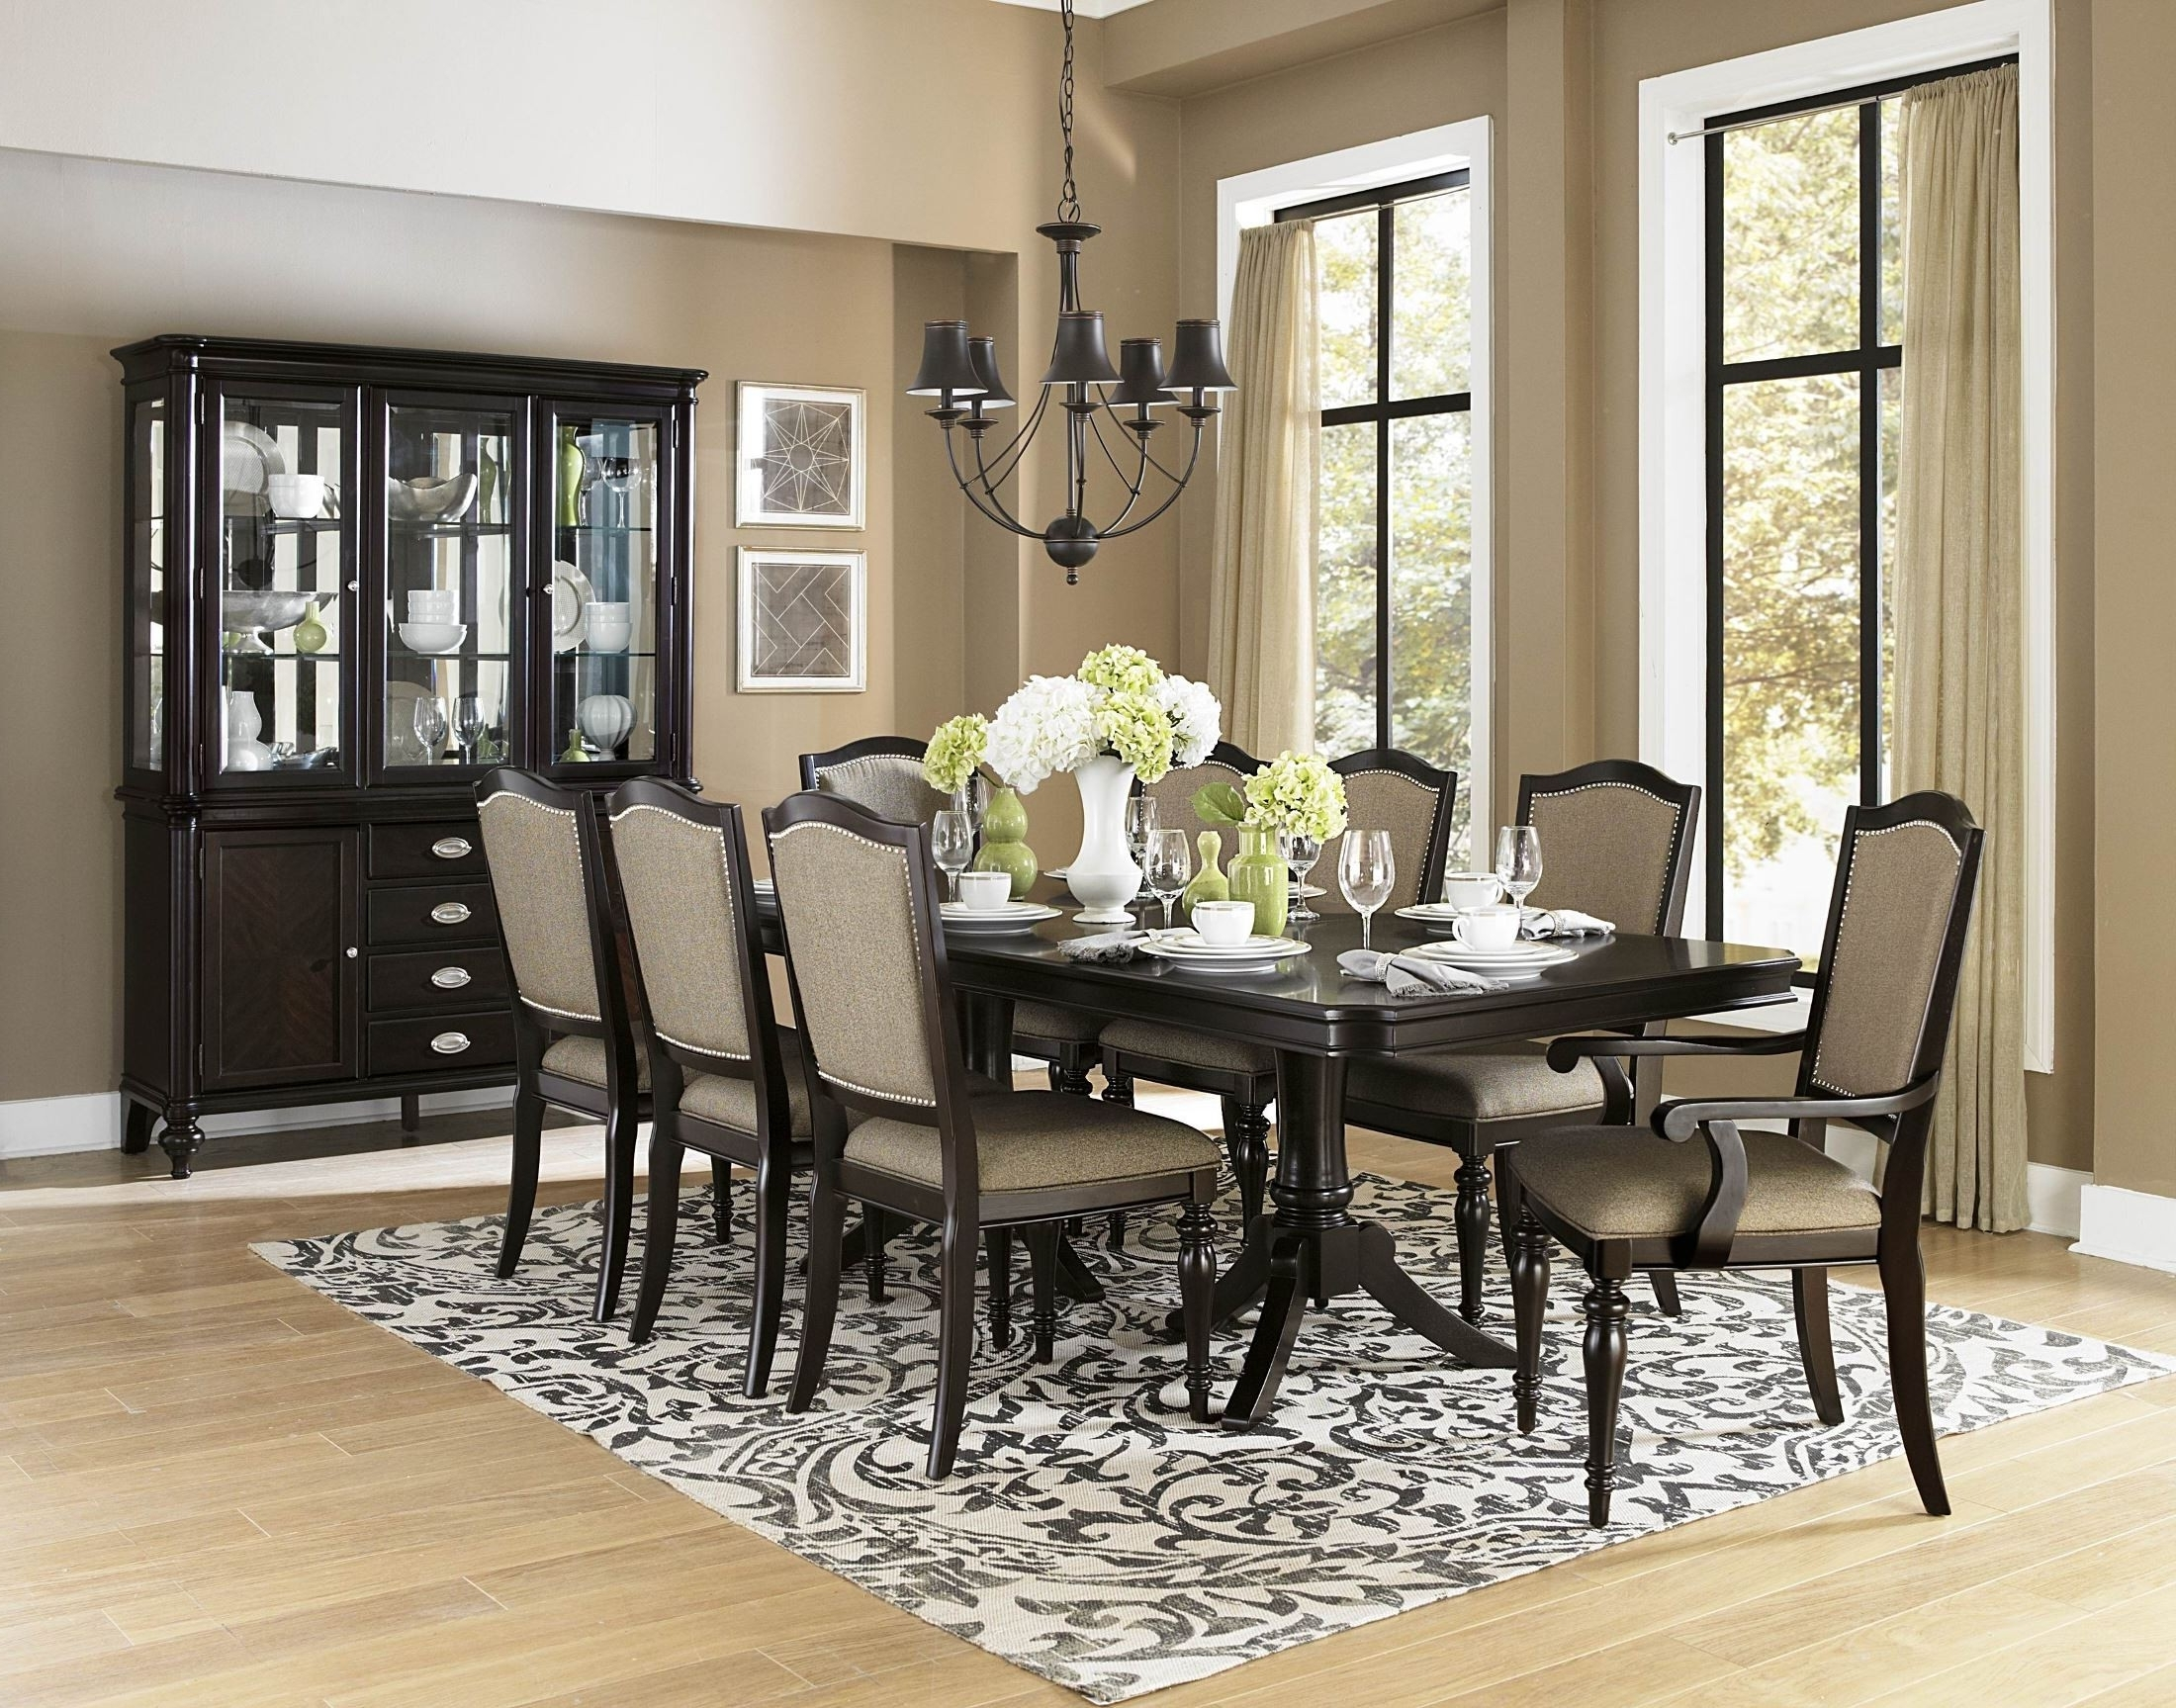 Best And Newest Homelegance Marston Rectangular Extendable Dining Room Set – Marston Inside Craftsman 7 Piece Rectangle Extension Dining Sets With Arm & Side Chairs (View 20 of 25)